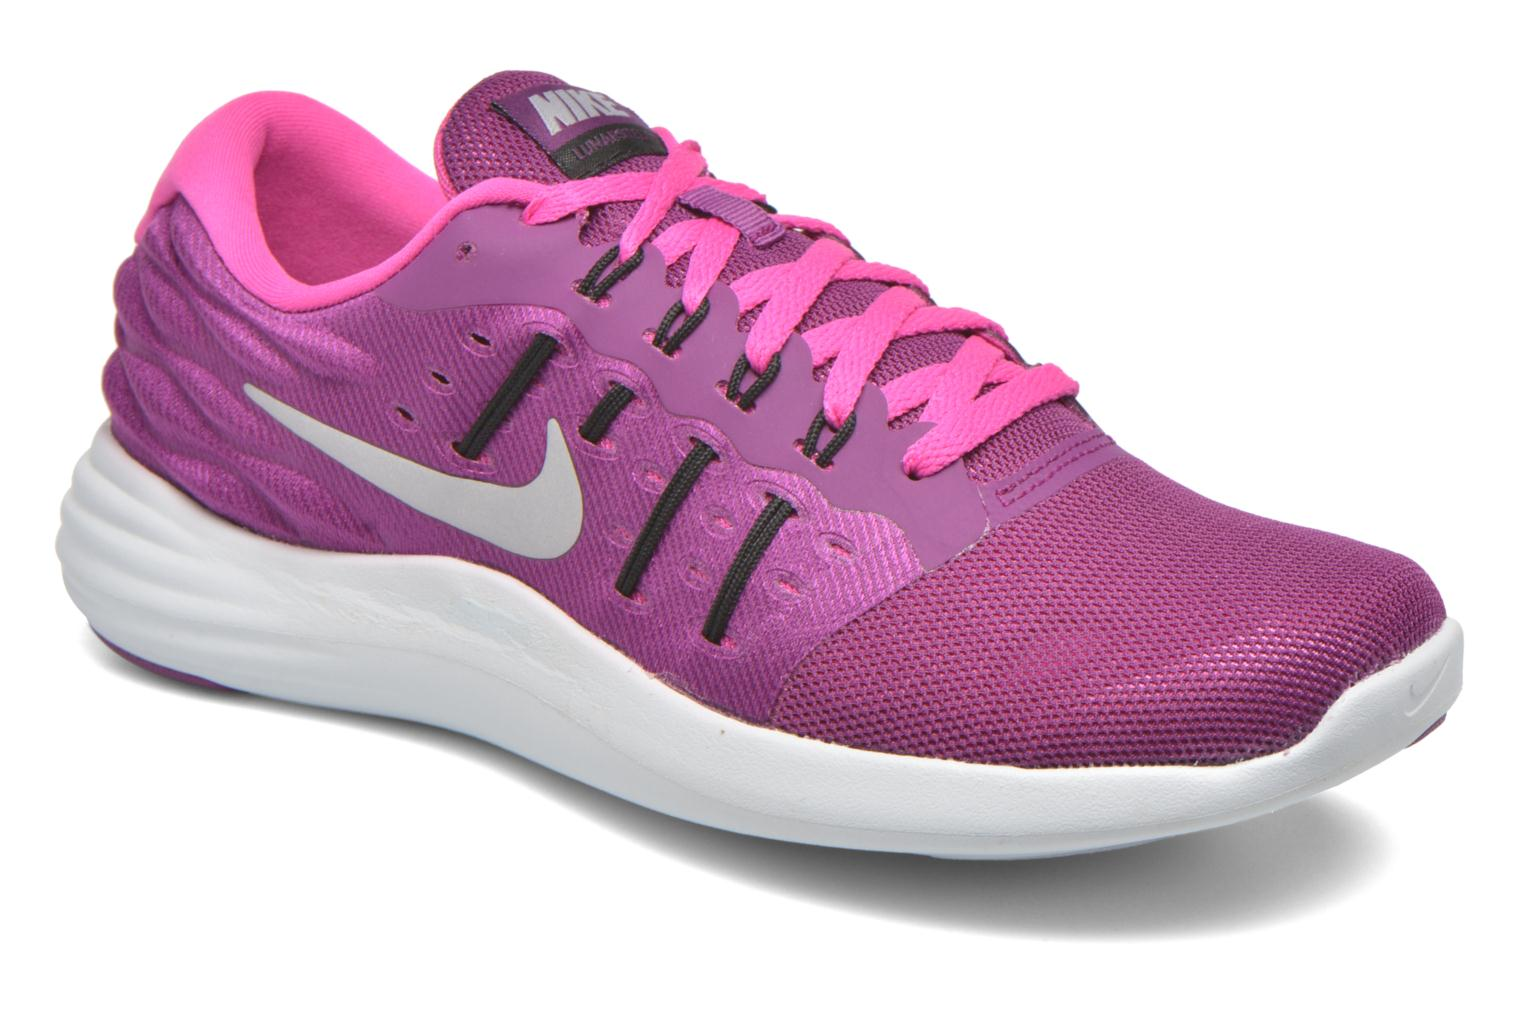 Wmns Nike Lunarstelos Bright Grape/Metallic Silver-Fire Pink